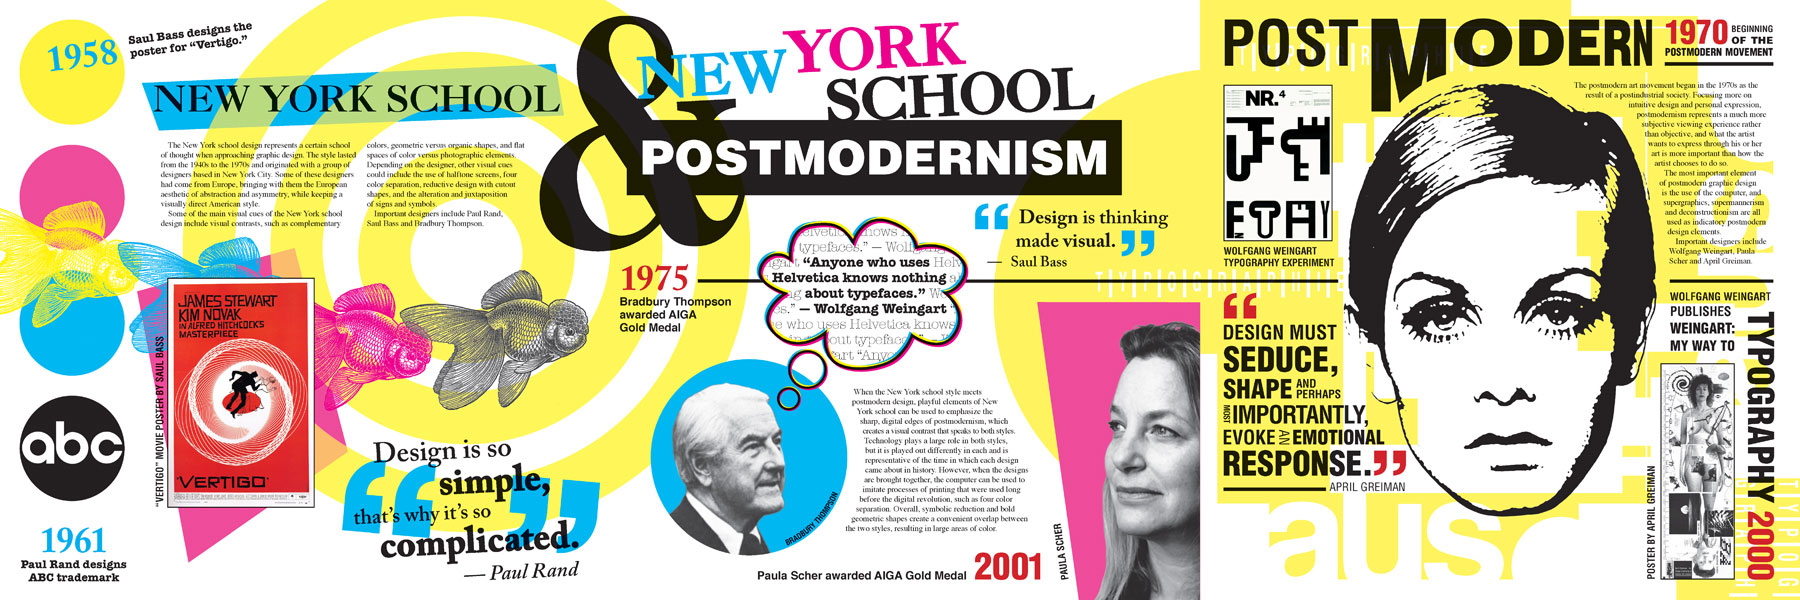 New York School and Post Modern